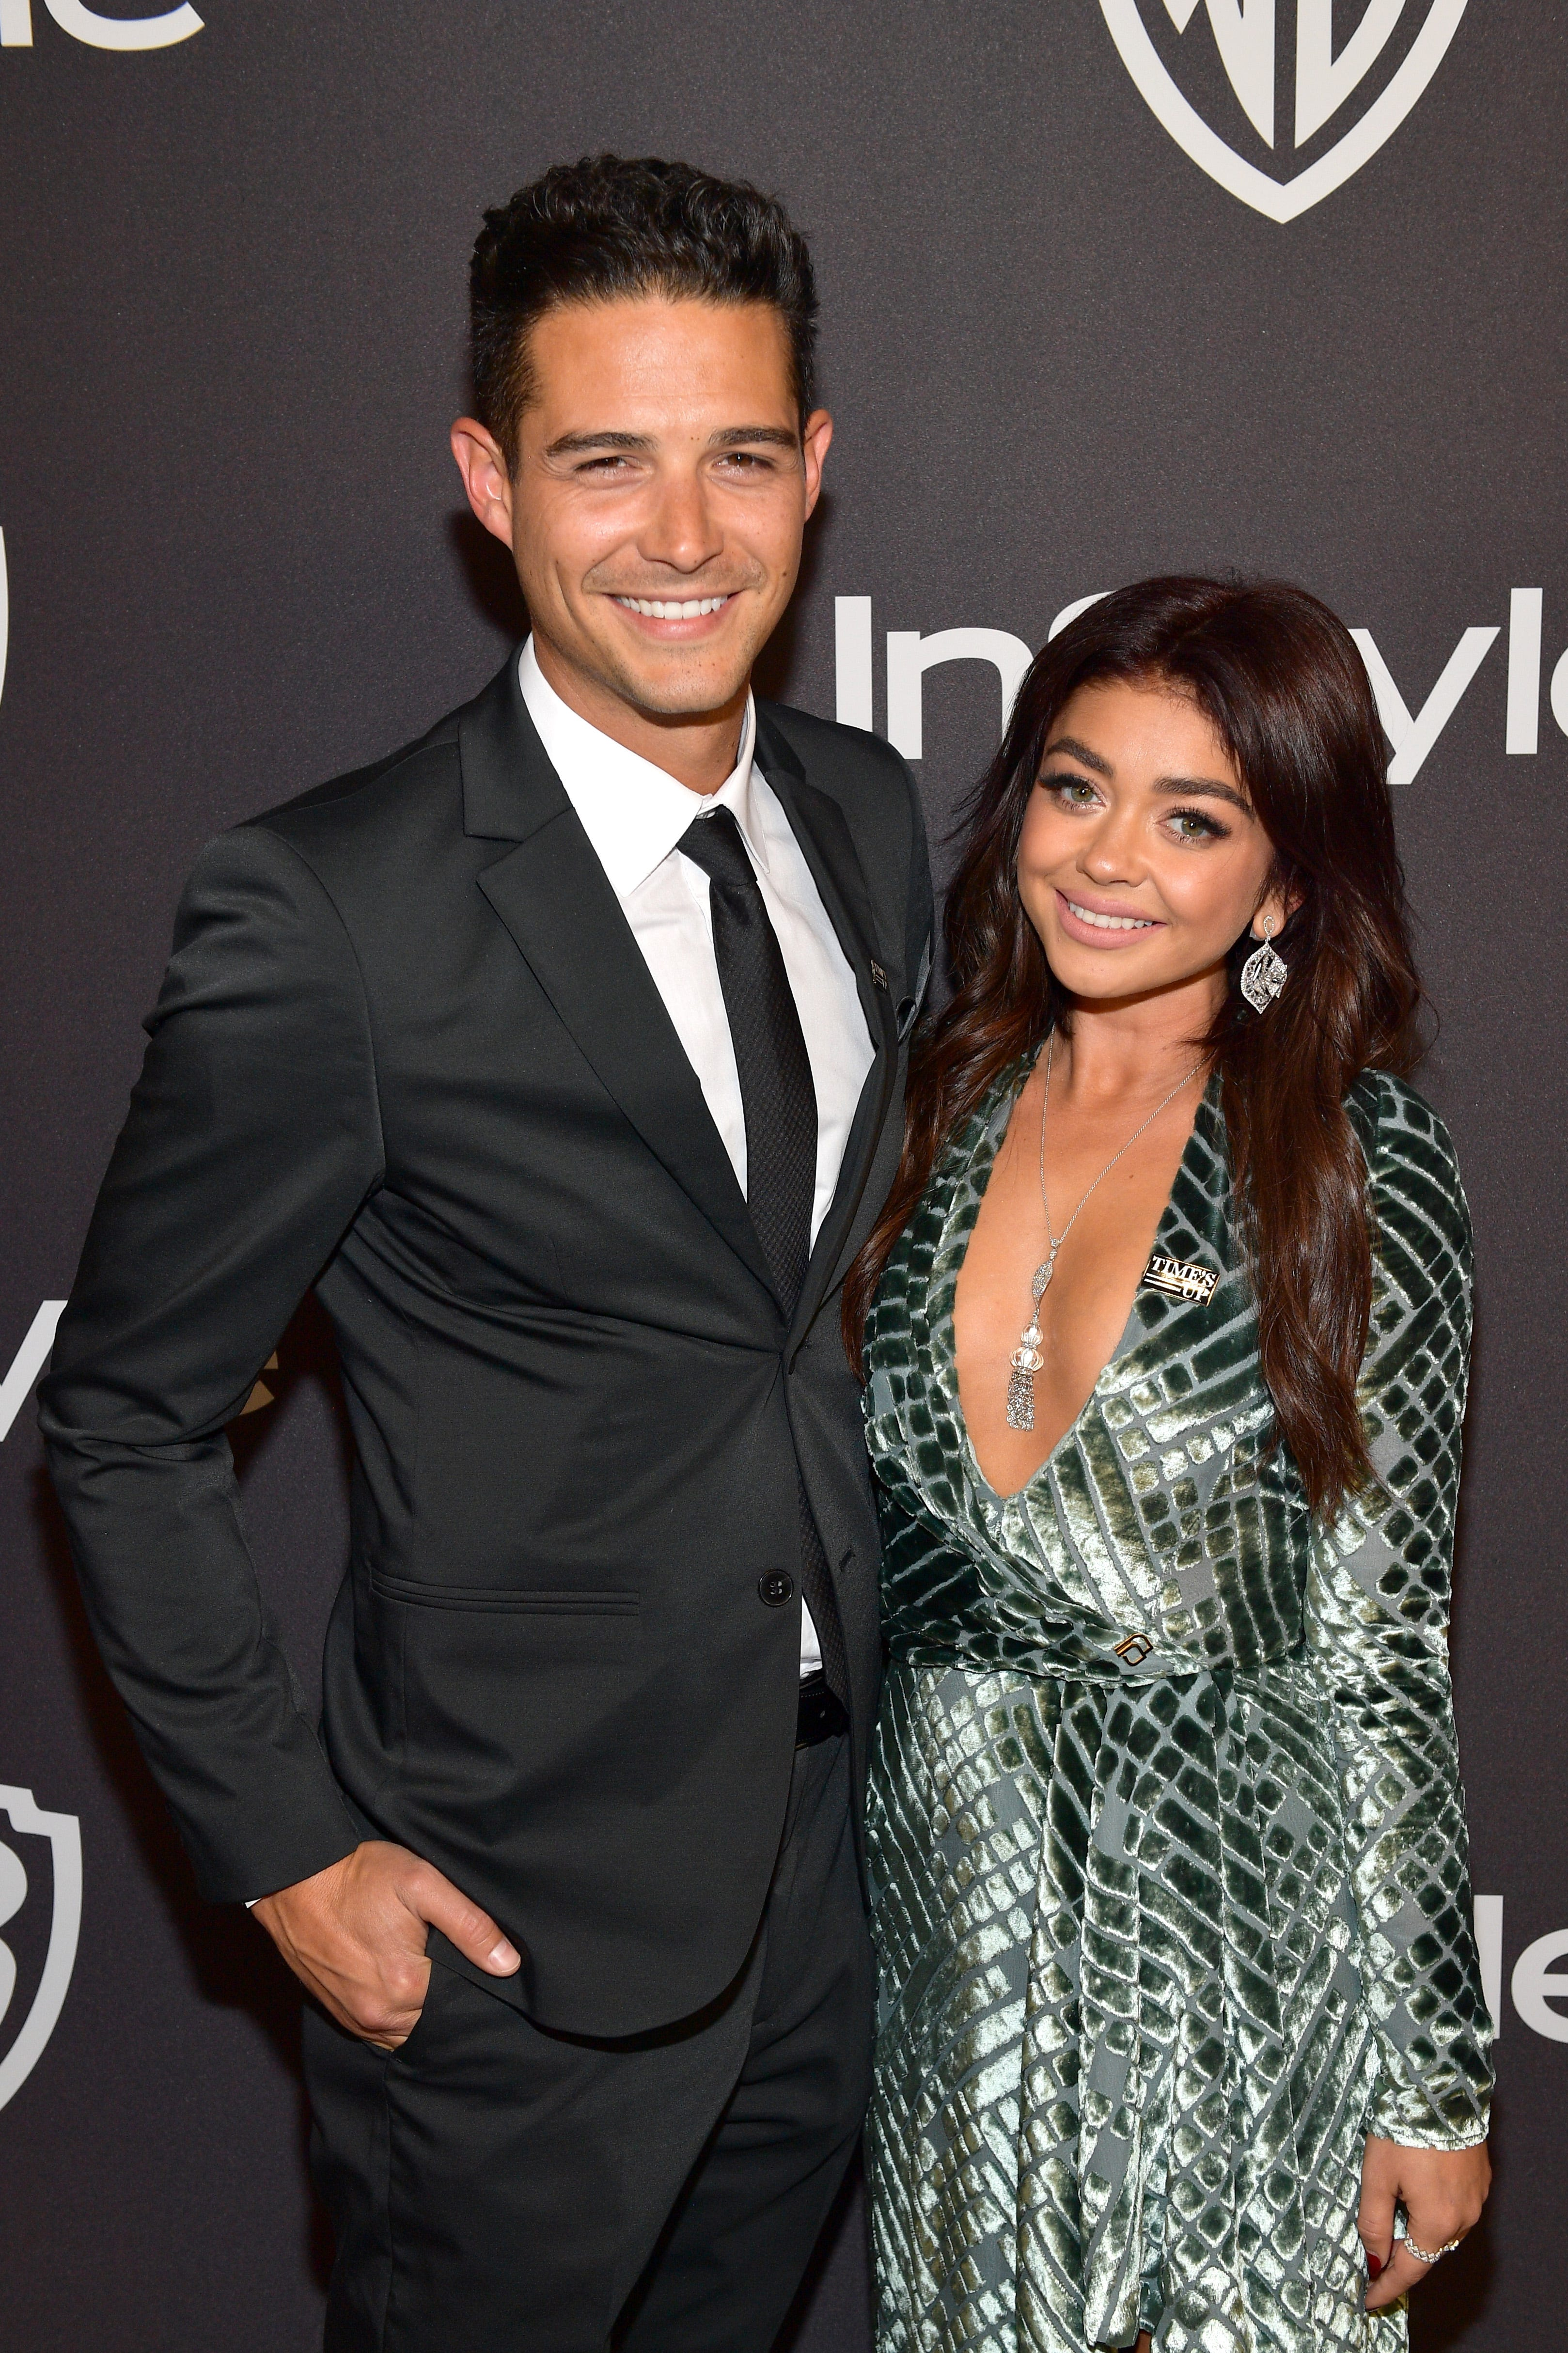 Sarah Hyland reveals how her health issues 'set a tone' for relationship with Wells Adams